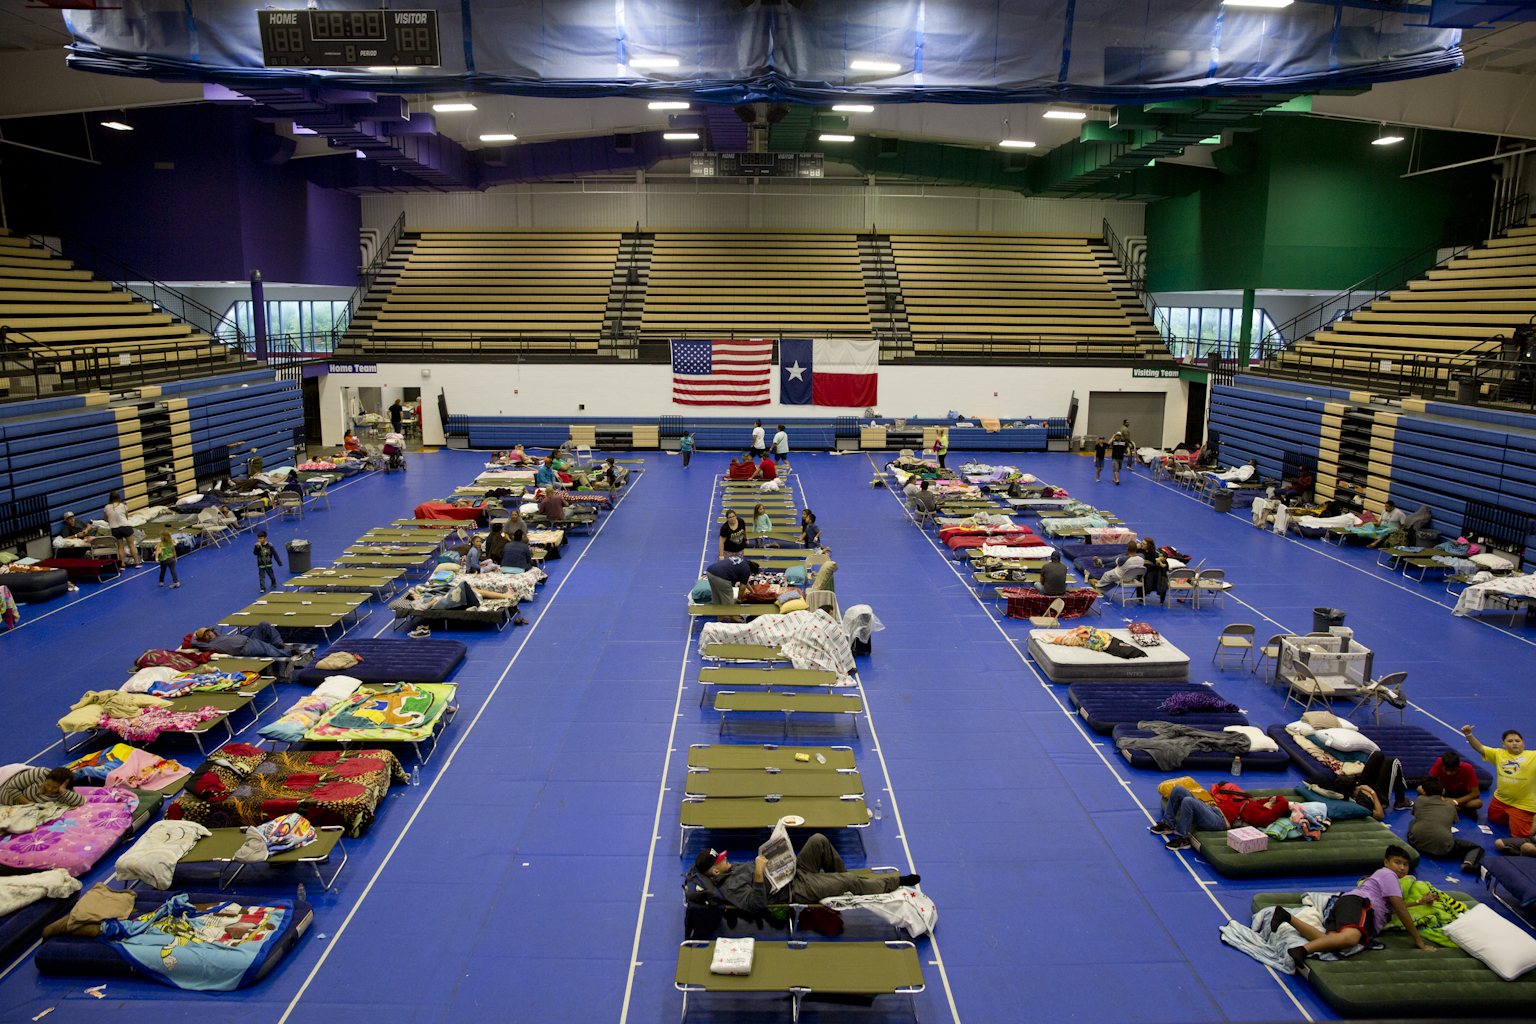 The Red Cross aided with the setup of a shelter at the Delco Center in Austin. The shelter helped several people in need after Hurricane Harvey hit the Texas coast in August.